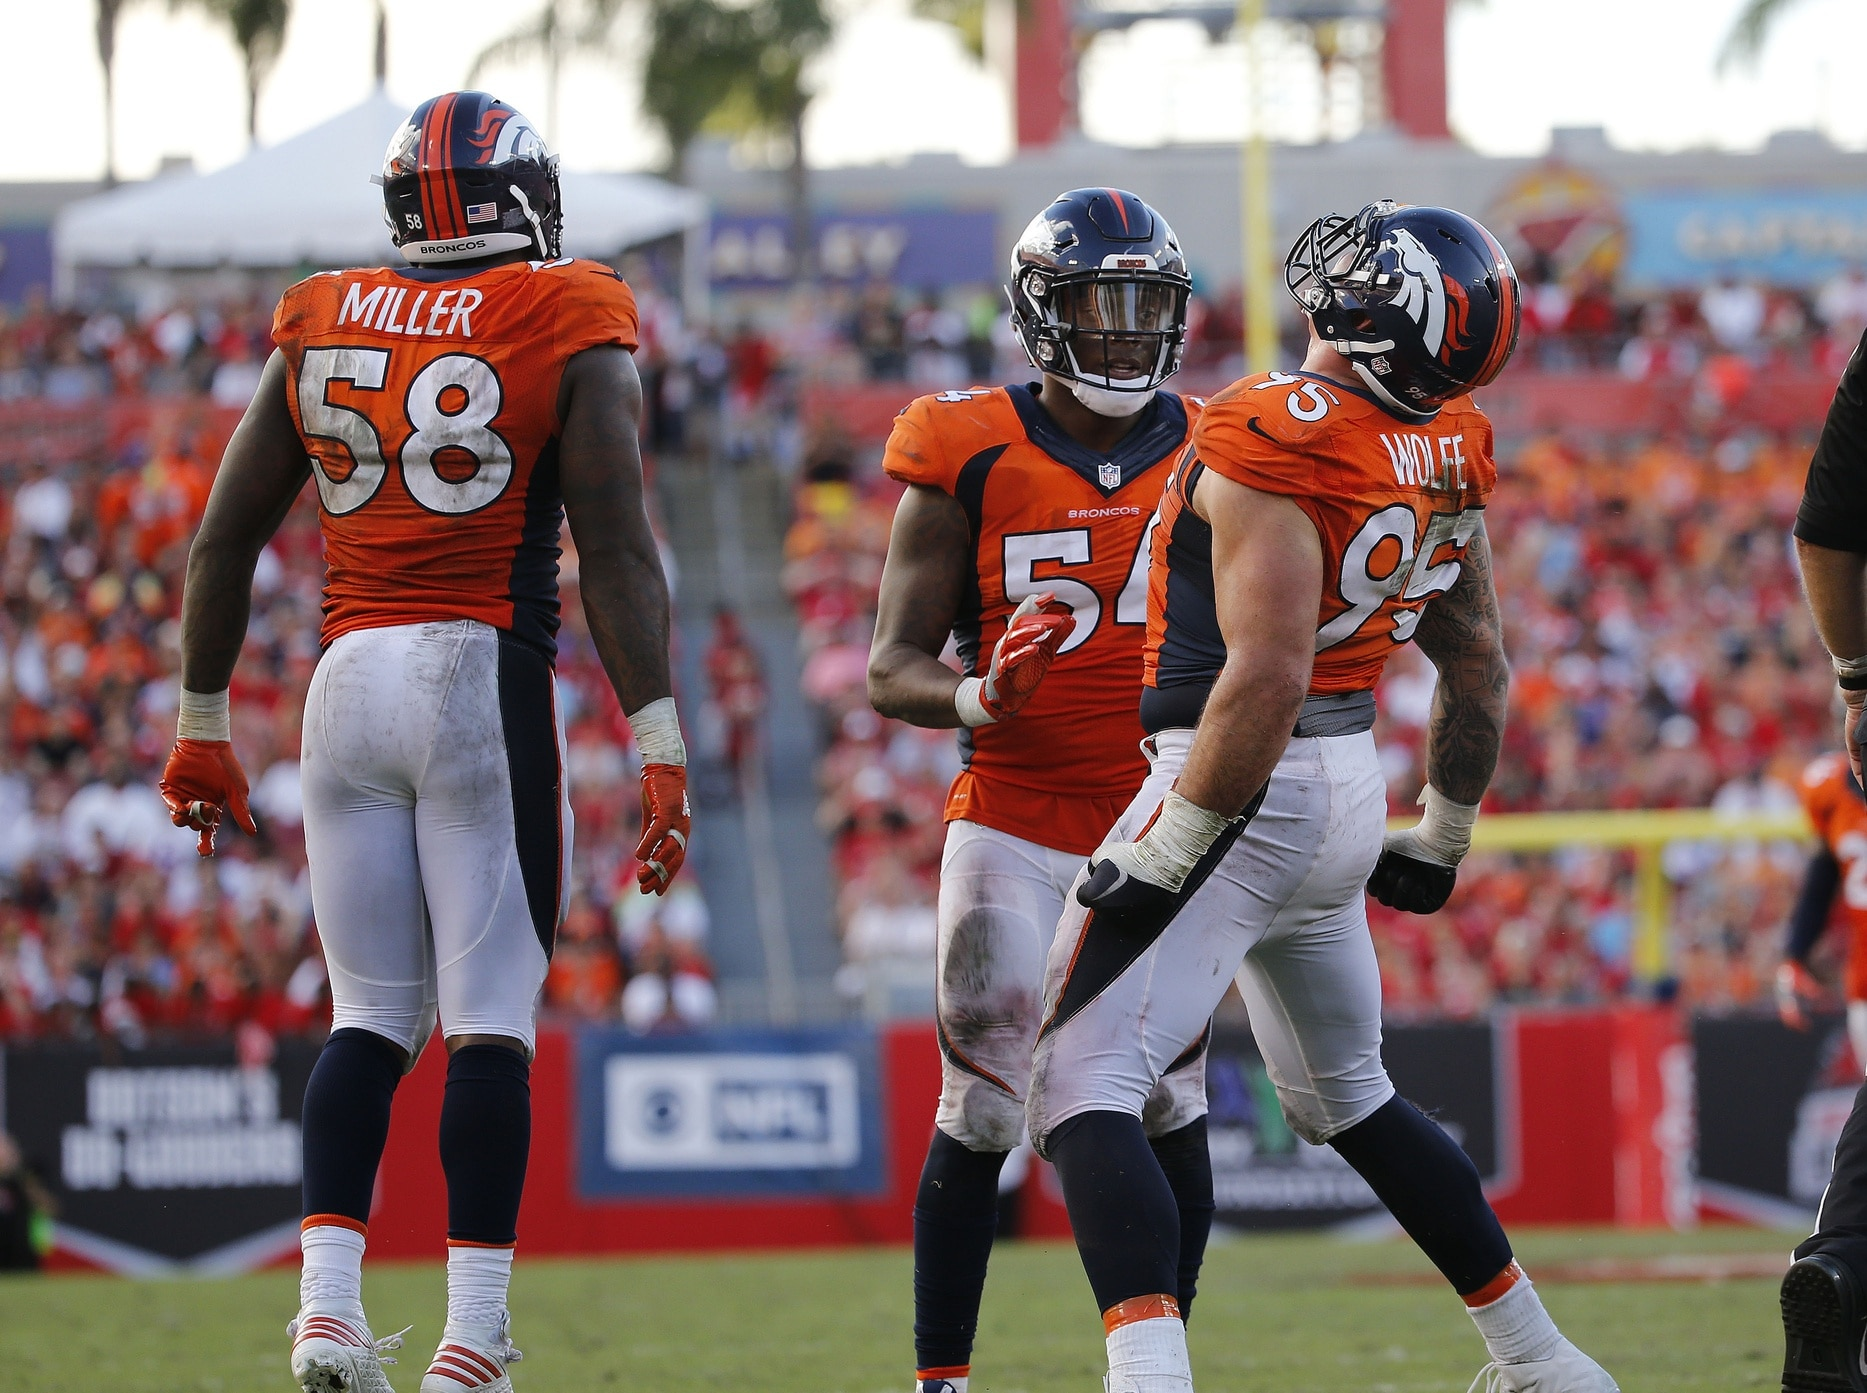 Derek Wolfe will not need surgery shares pic of swollen ankle